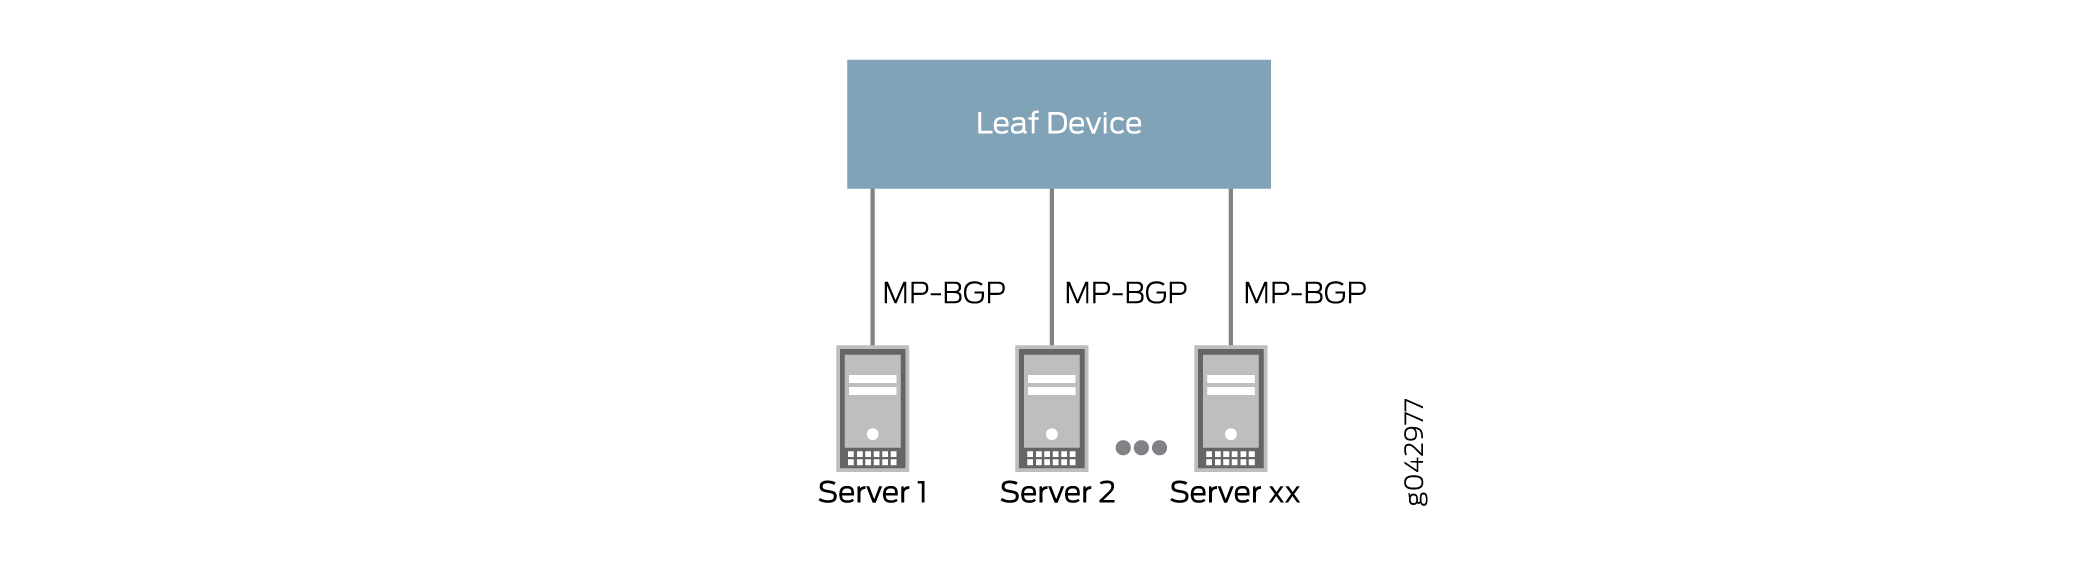 Example: Configuring the Software as a Service Solution